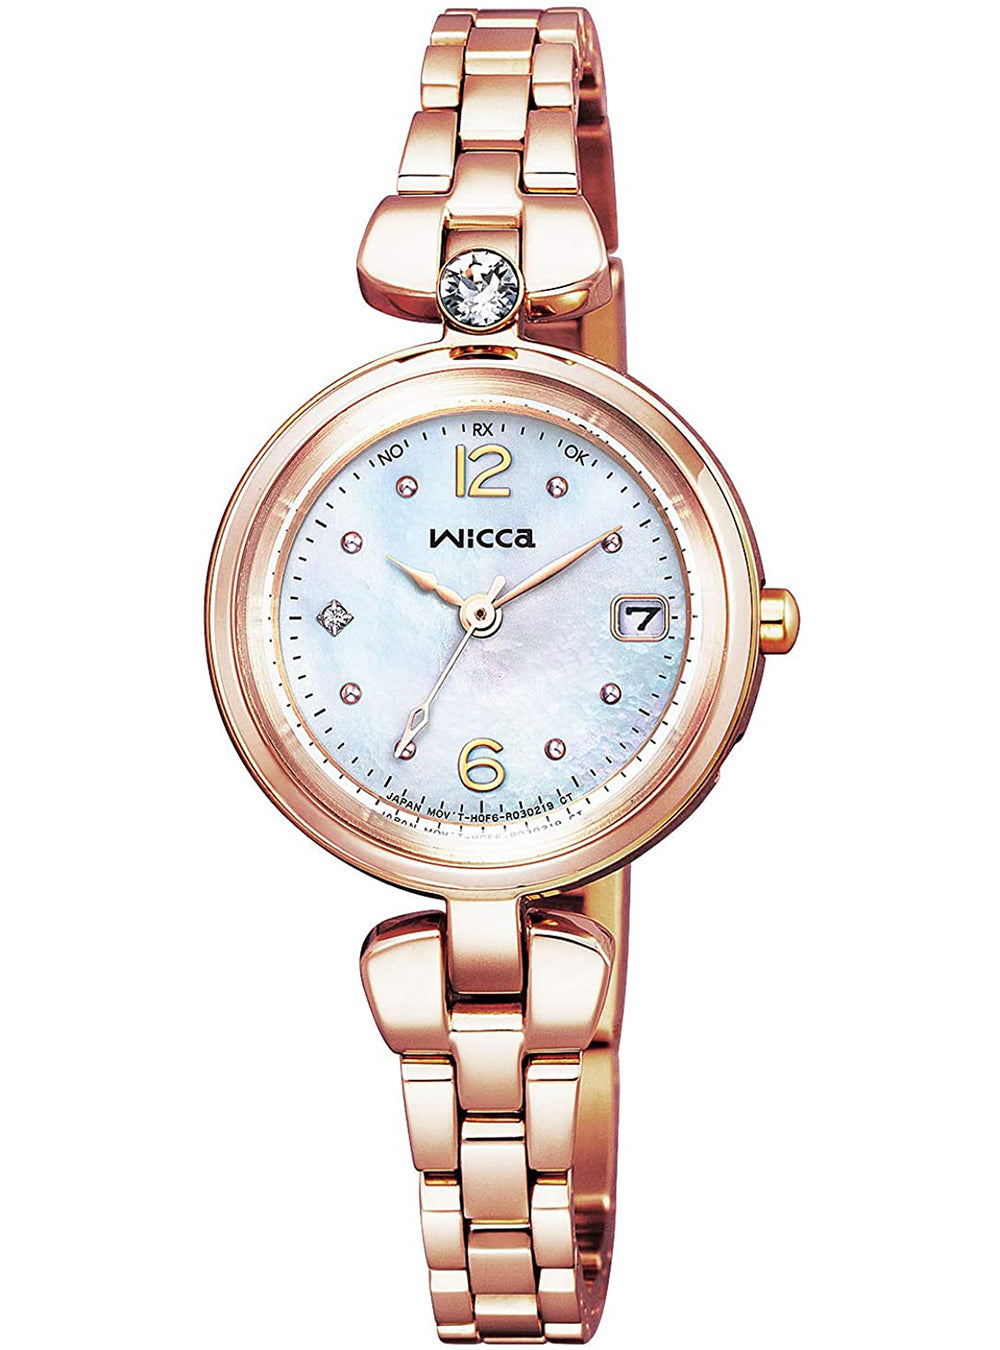 CITIZEN WICCA TIARA STAR COLLECTION KS1-660-91 JDM